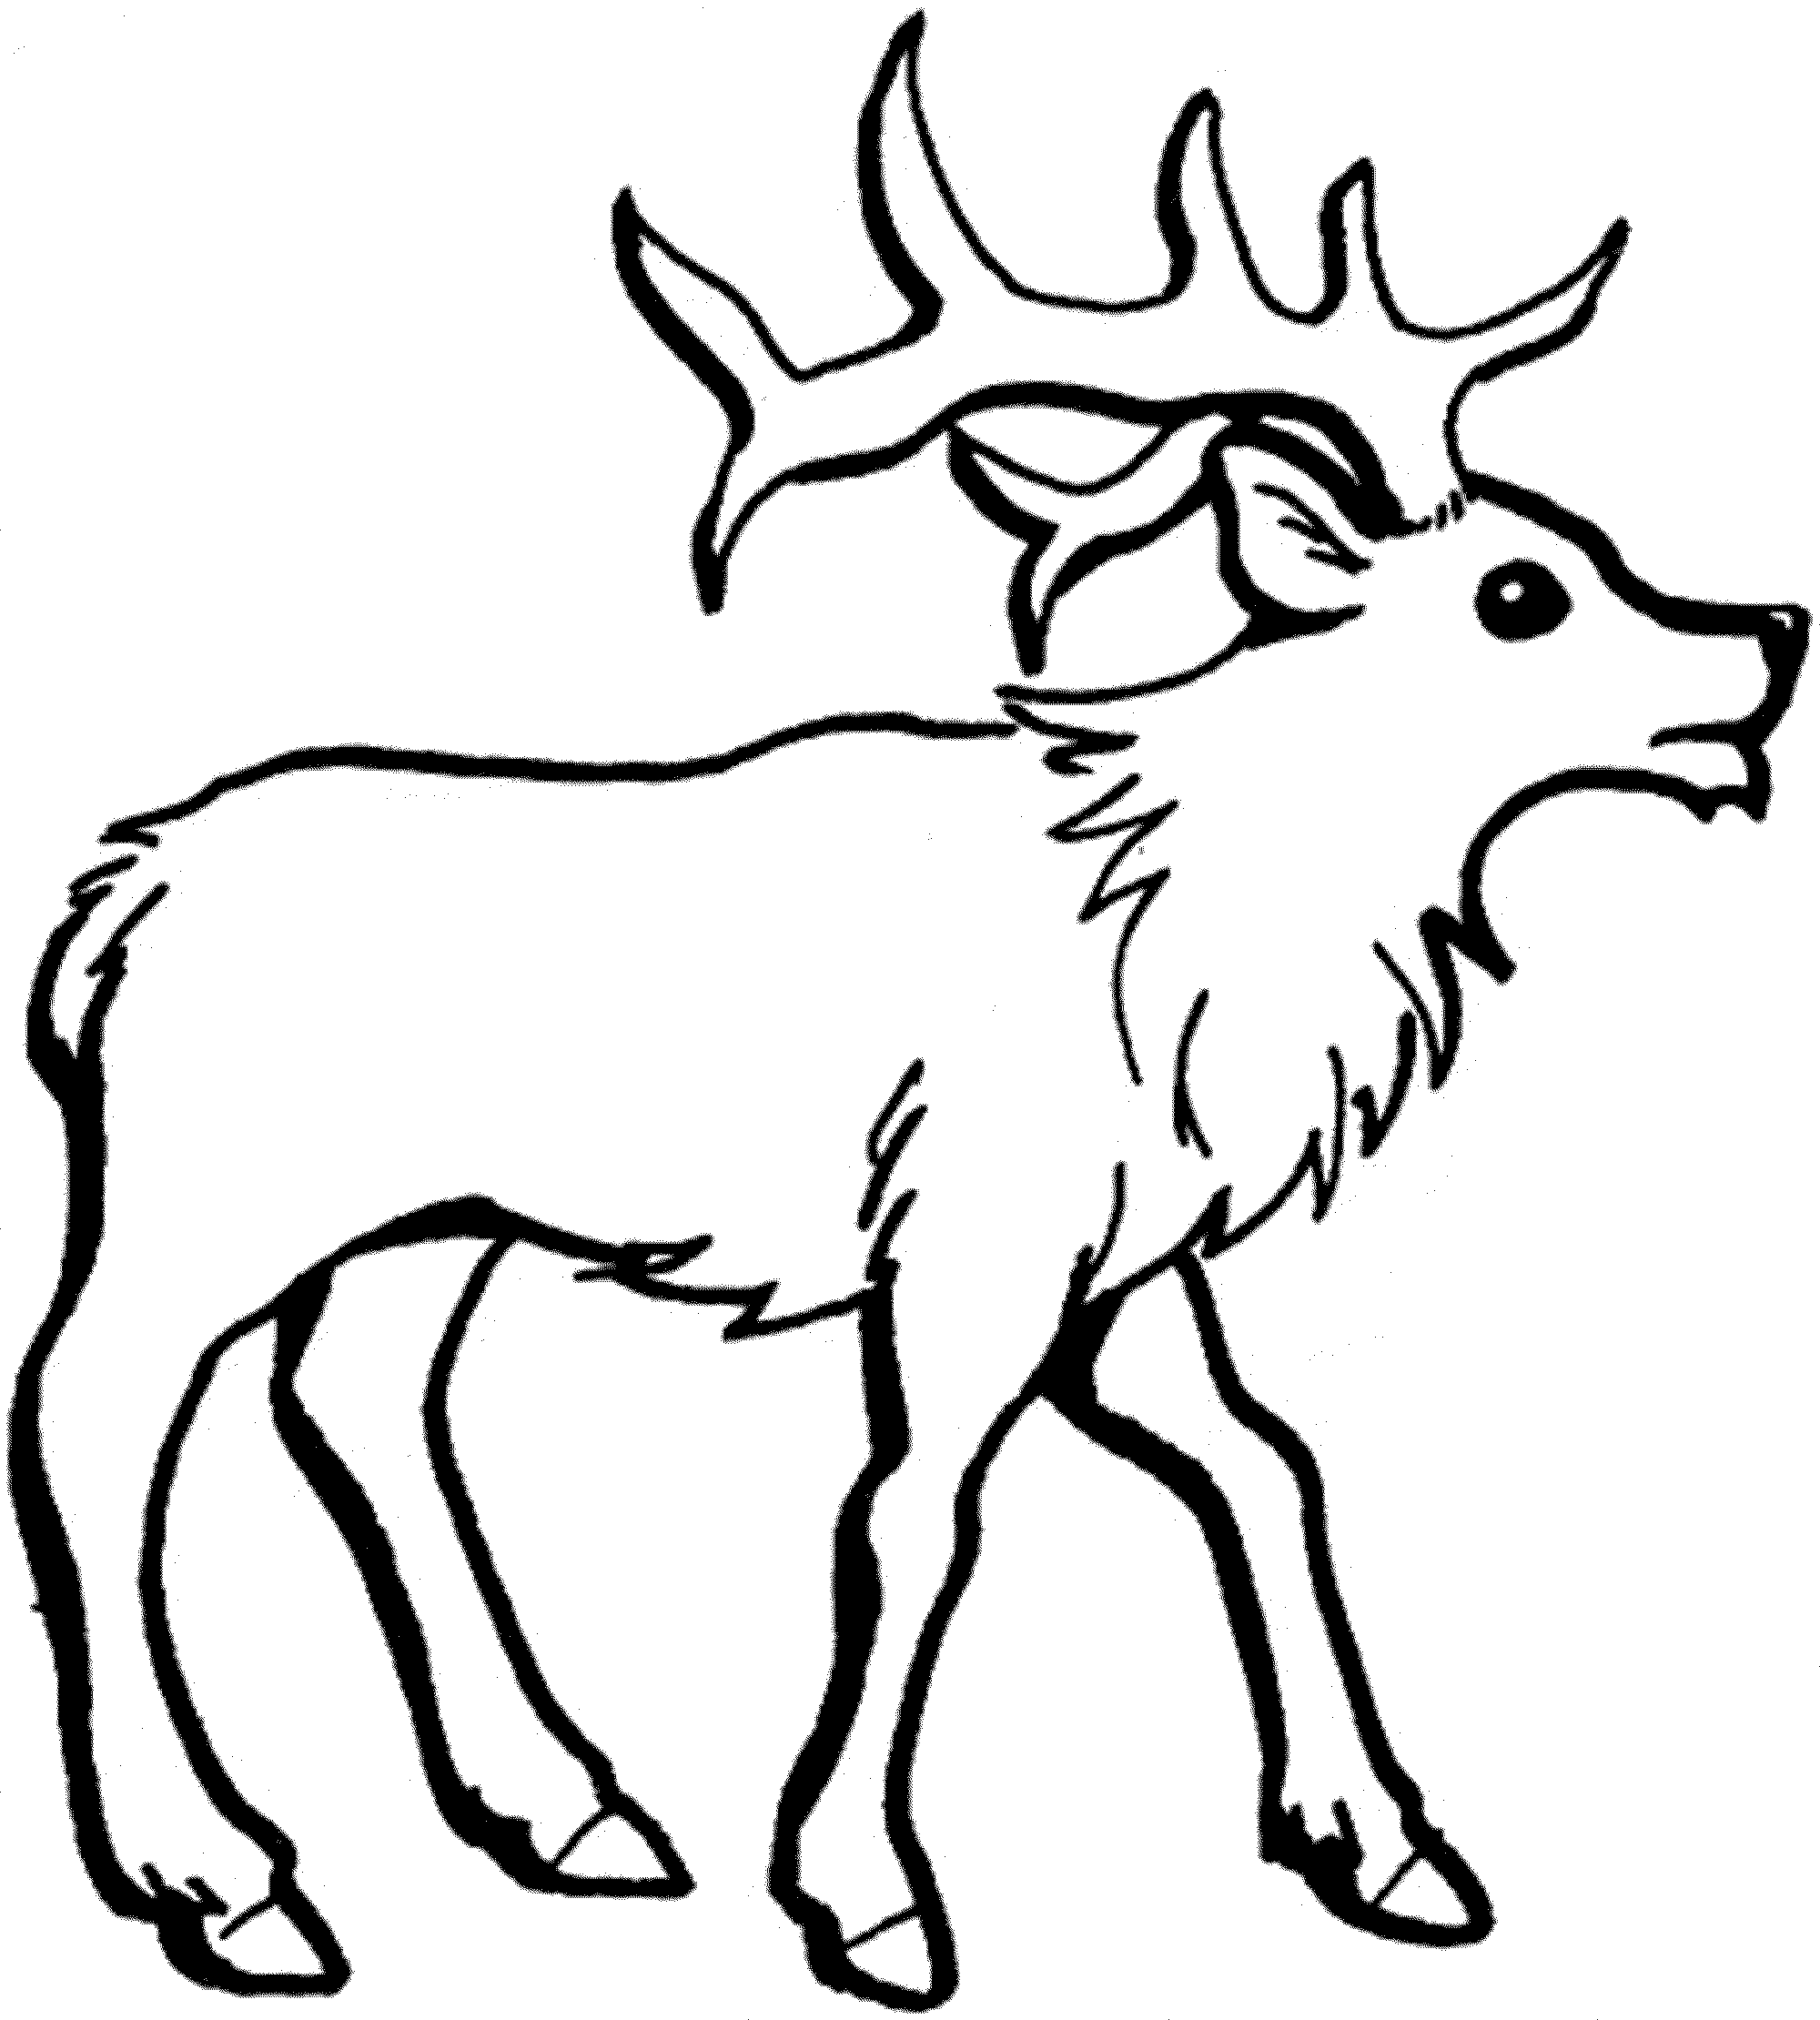 2000x2220 Reindeer Coloring Page Sheets Colouring Pages Ribsvigyapan